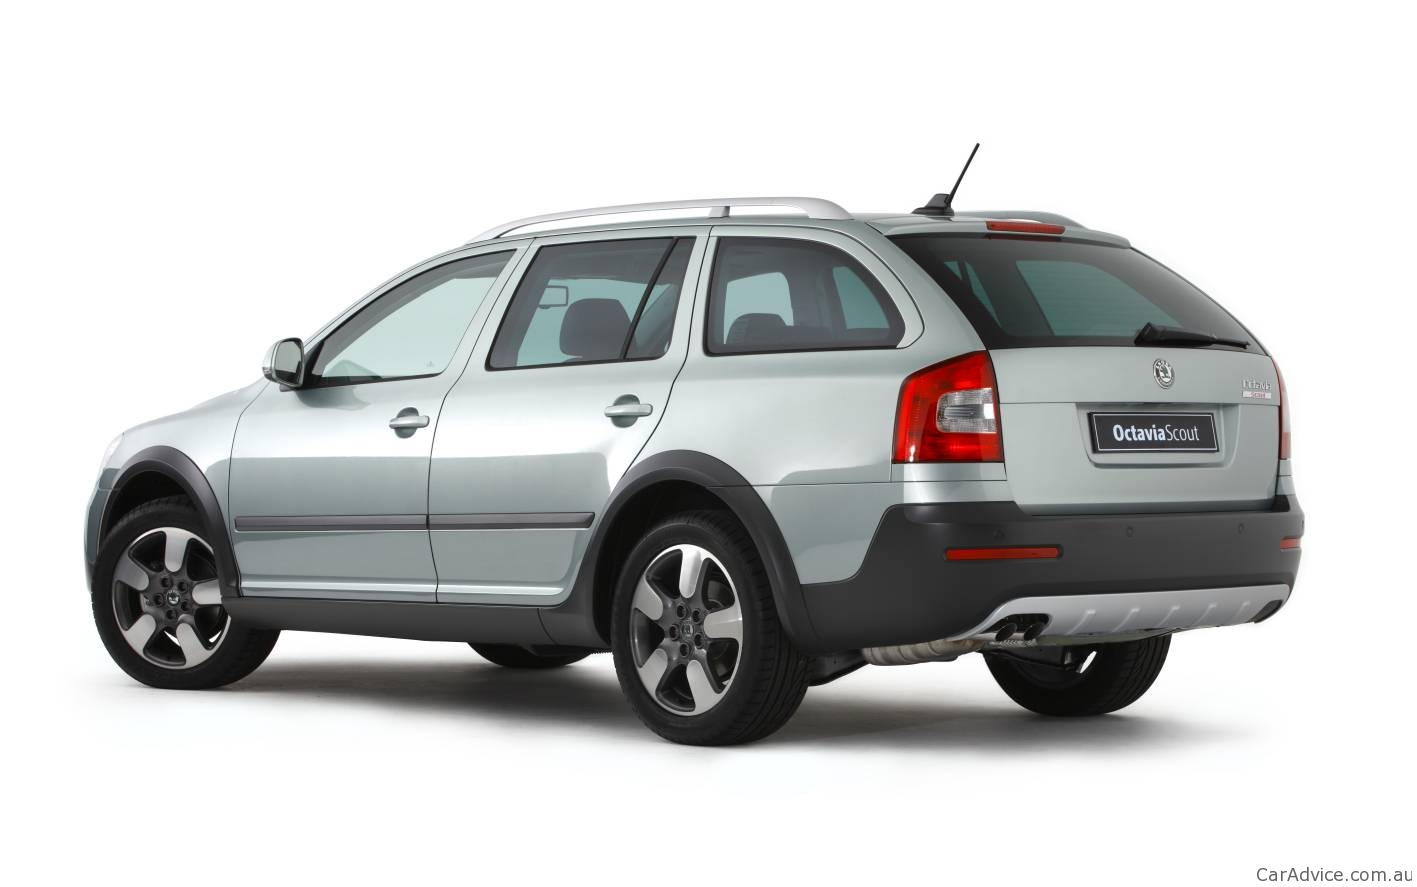 2011 skoda octavia scout 4x4 launched in australia photos. Black Bedroom Furniture Sets. Home Design Ideas